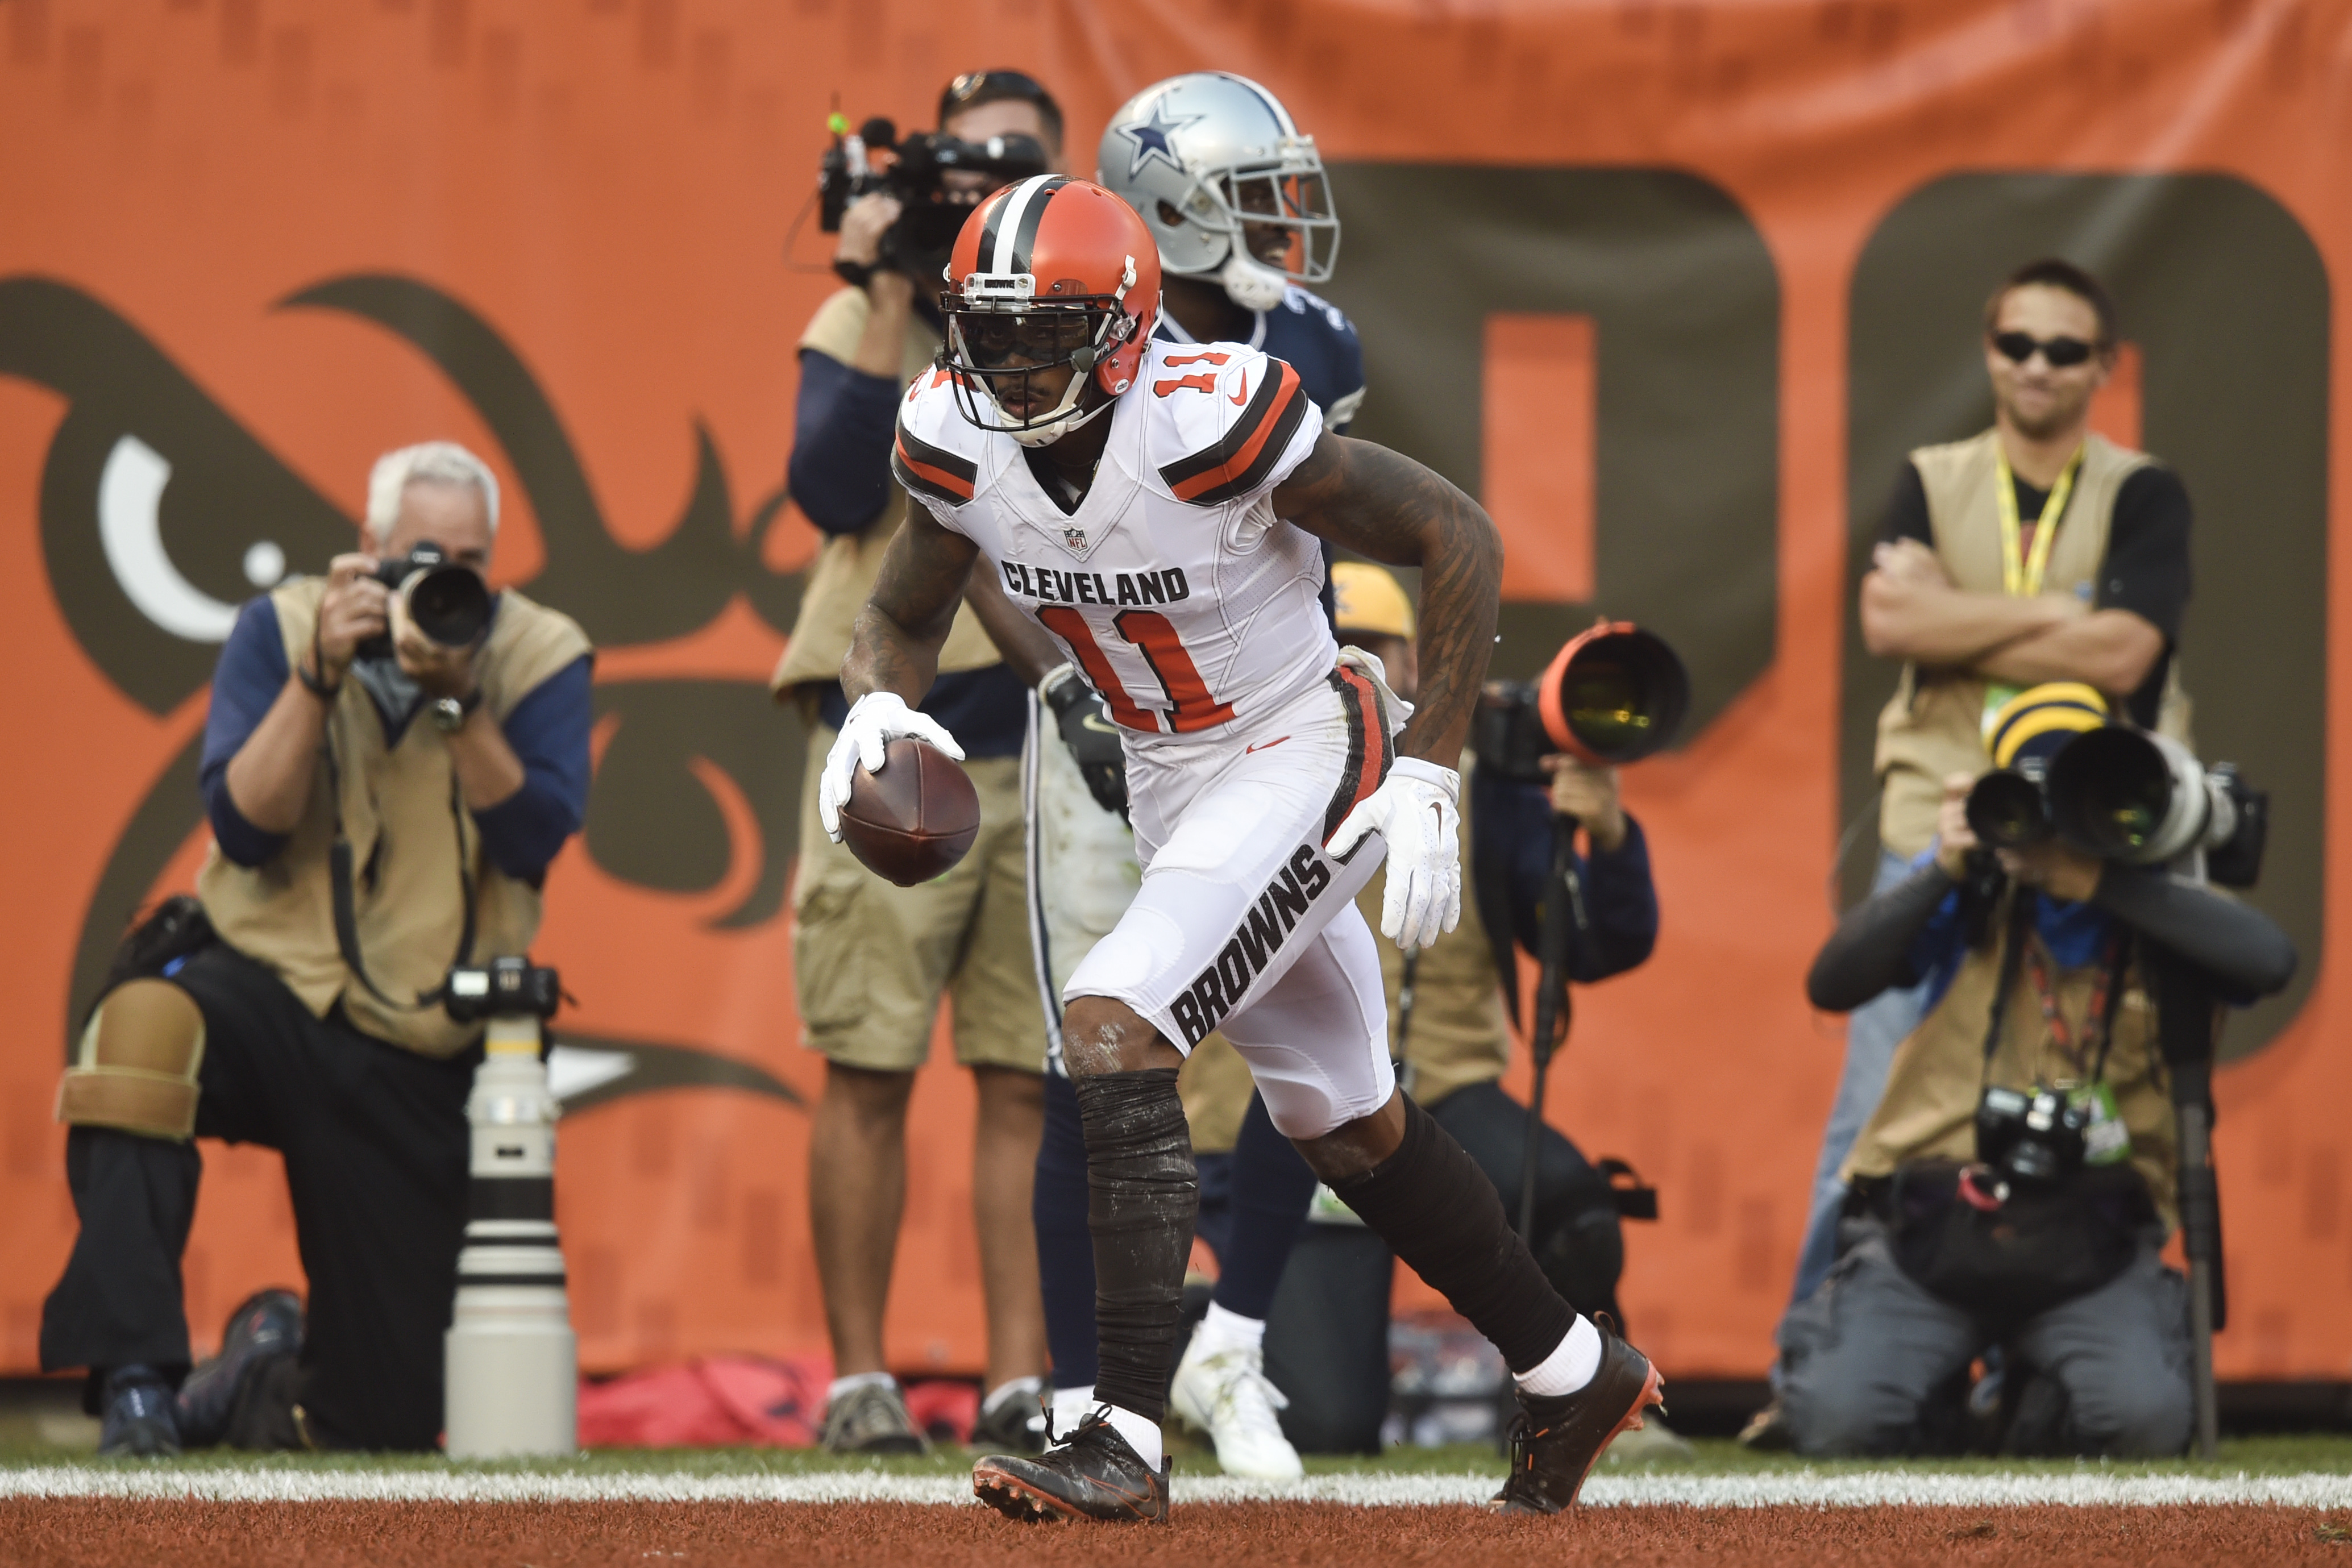 Cleveland Browns wide receiver Terrelle Pryor (11) runs the end zone after scoring a touchdown in the first half of an NFL football game against the Dallas Cowboys, Sunday, Nov. 6, 2016, in Cleveland. (AP Photo/David Richard)